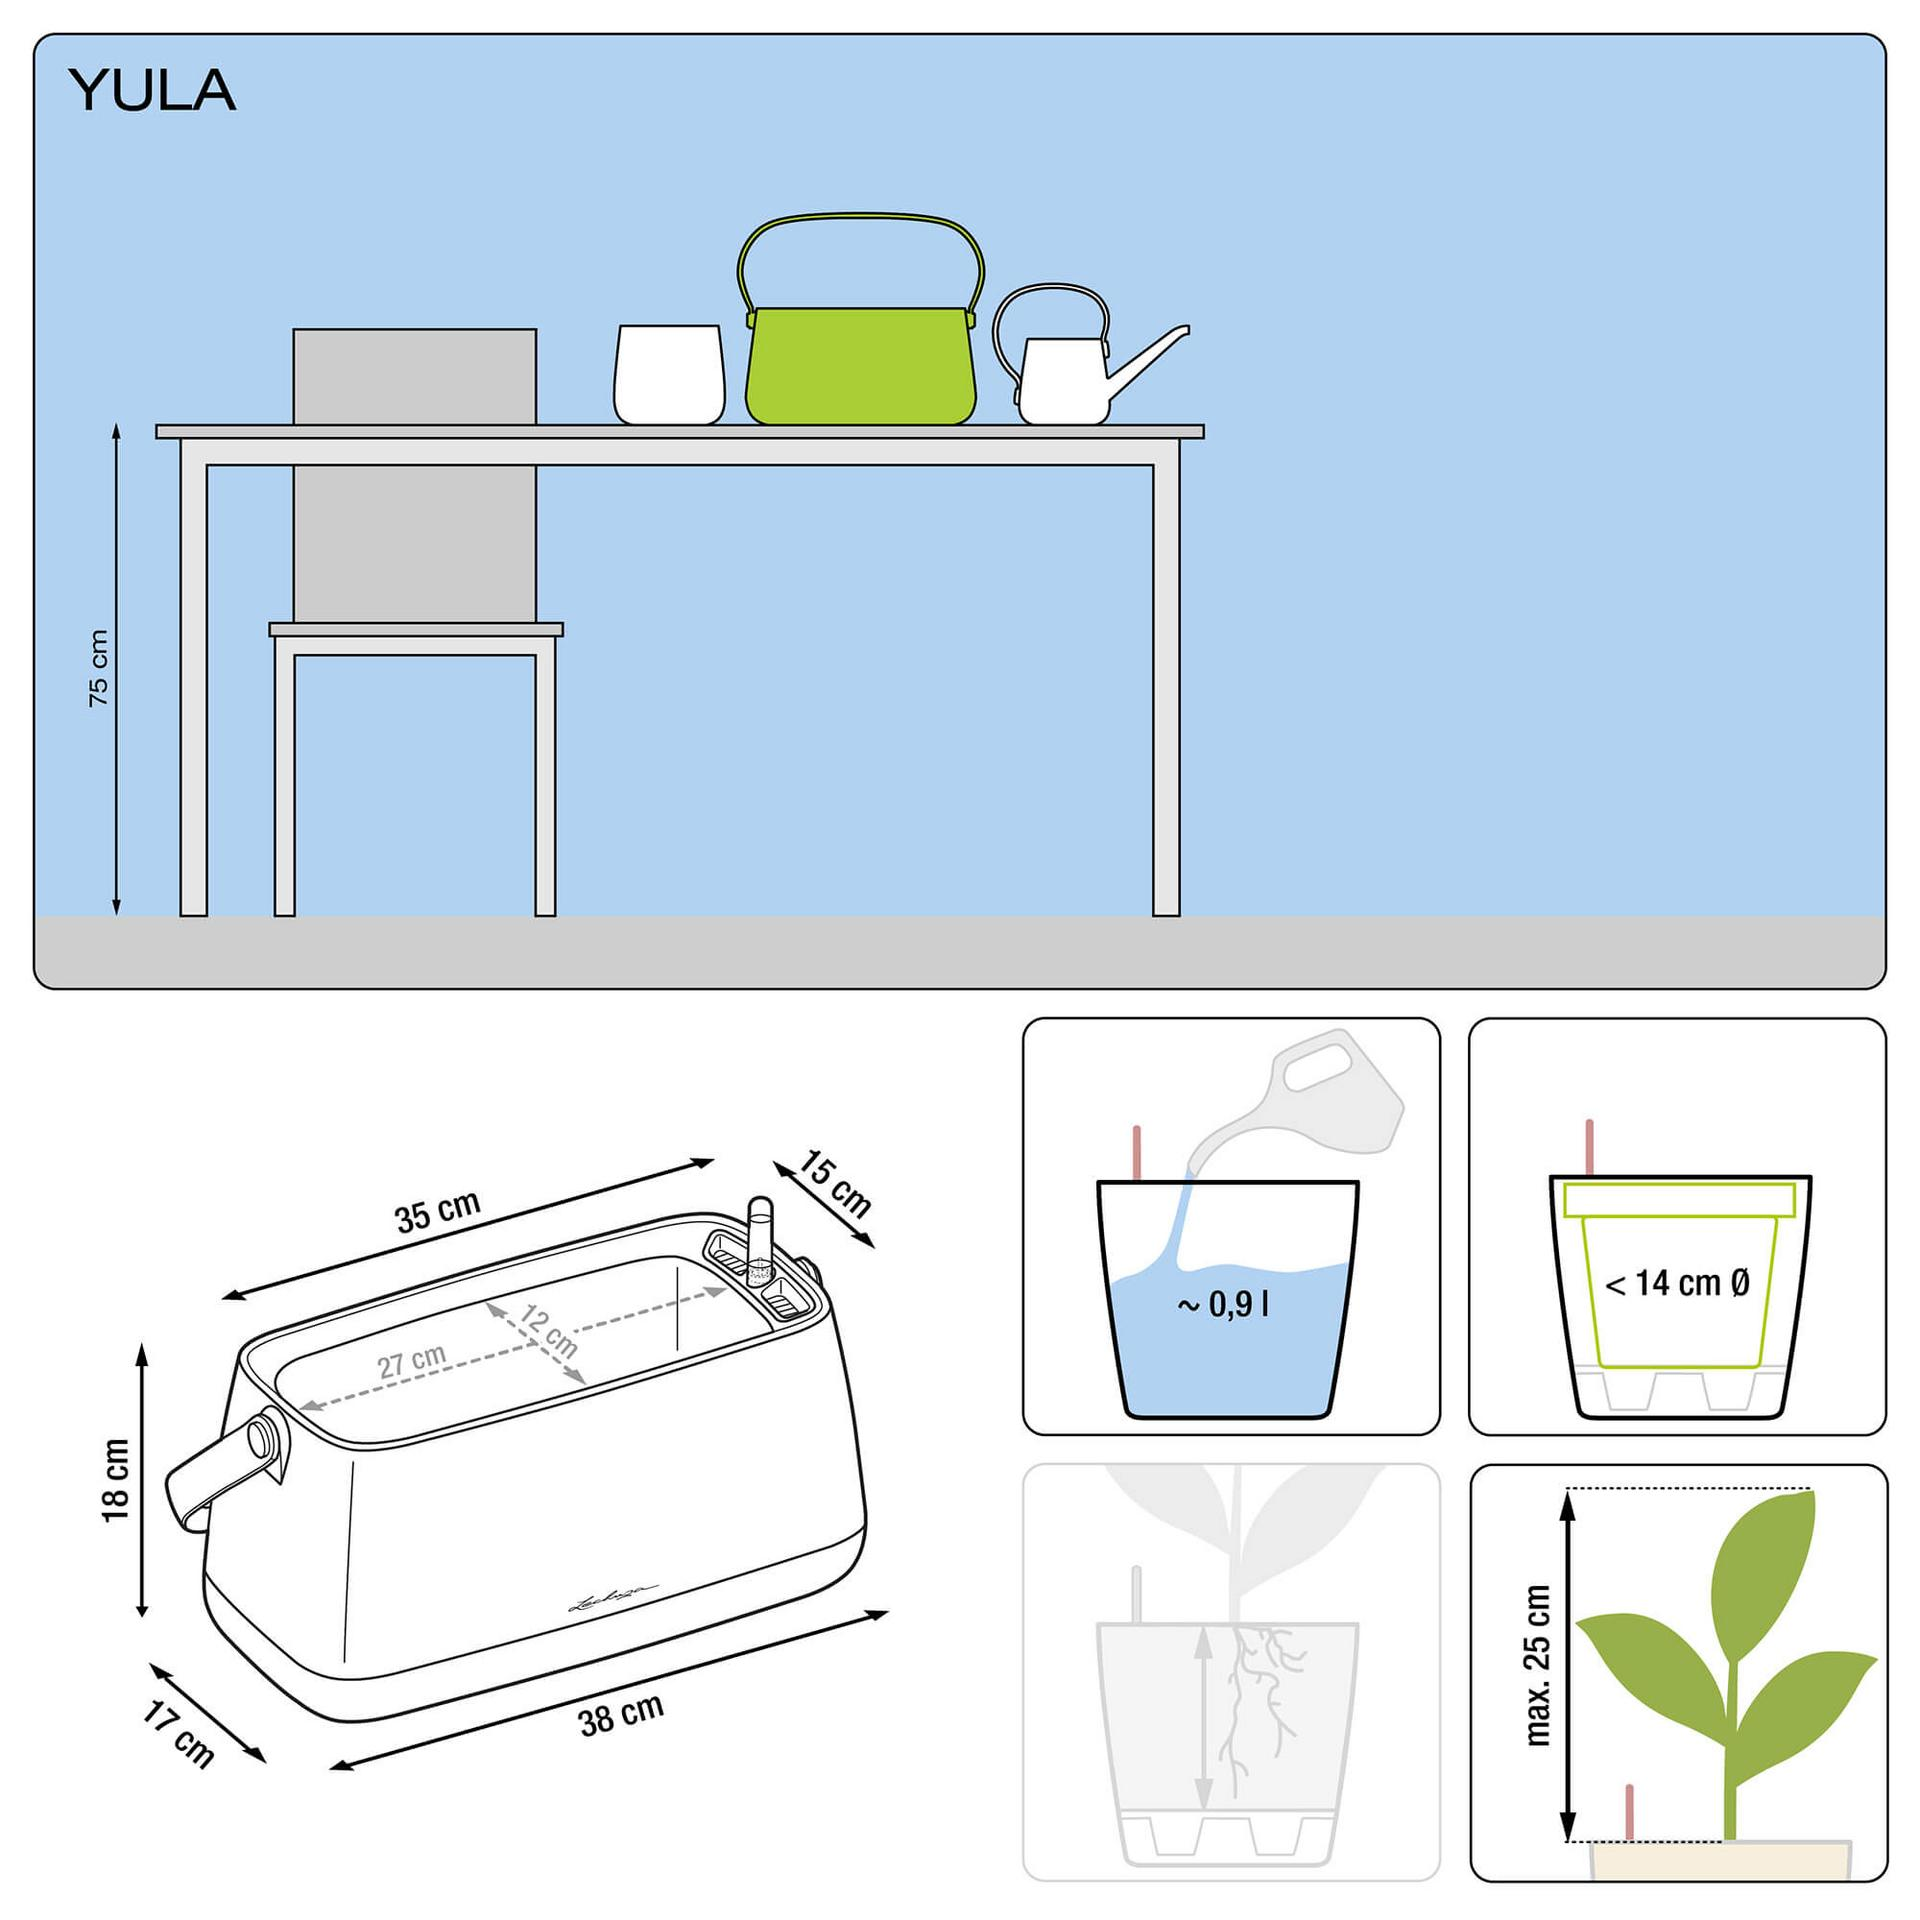 le_yula-pflanztasche_product_addi_nz